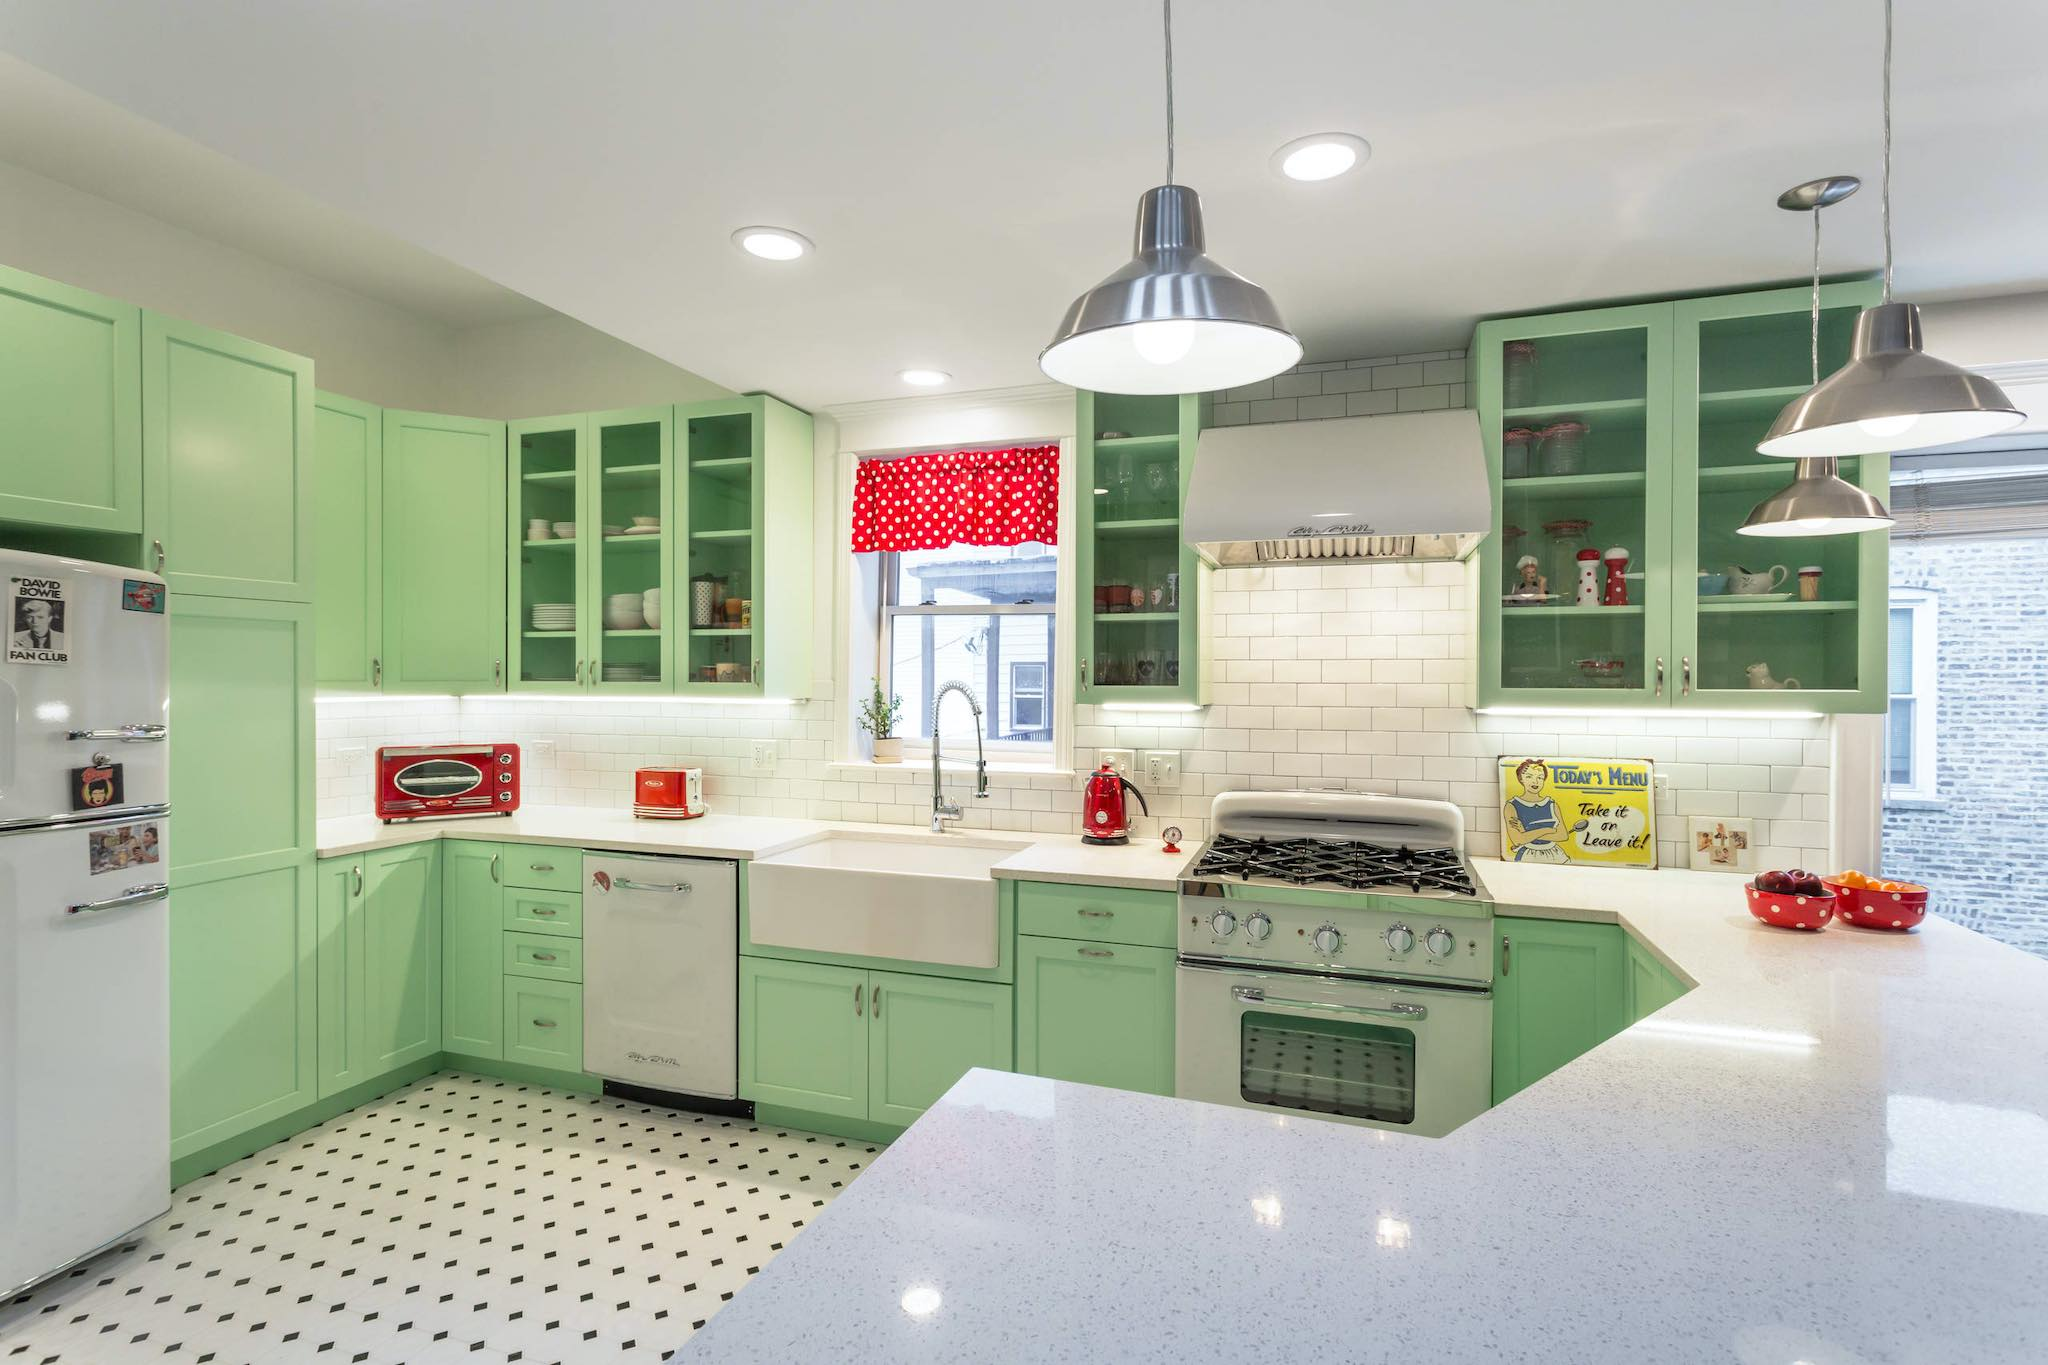 1940's Retro Theme Kitchen